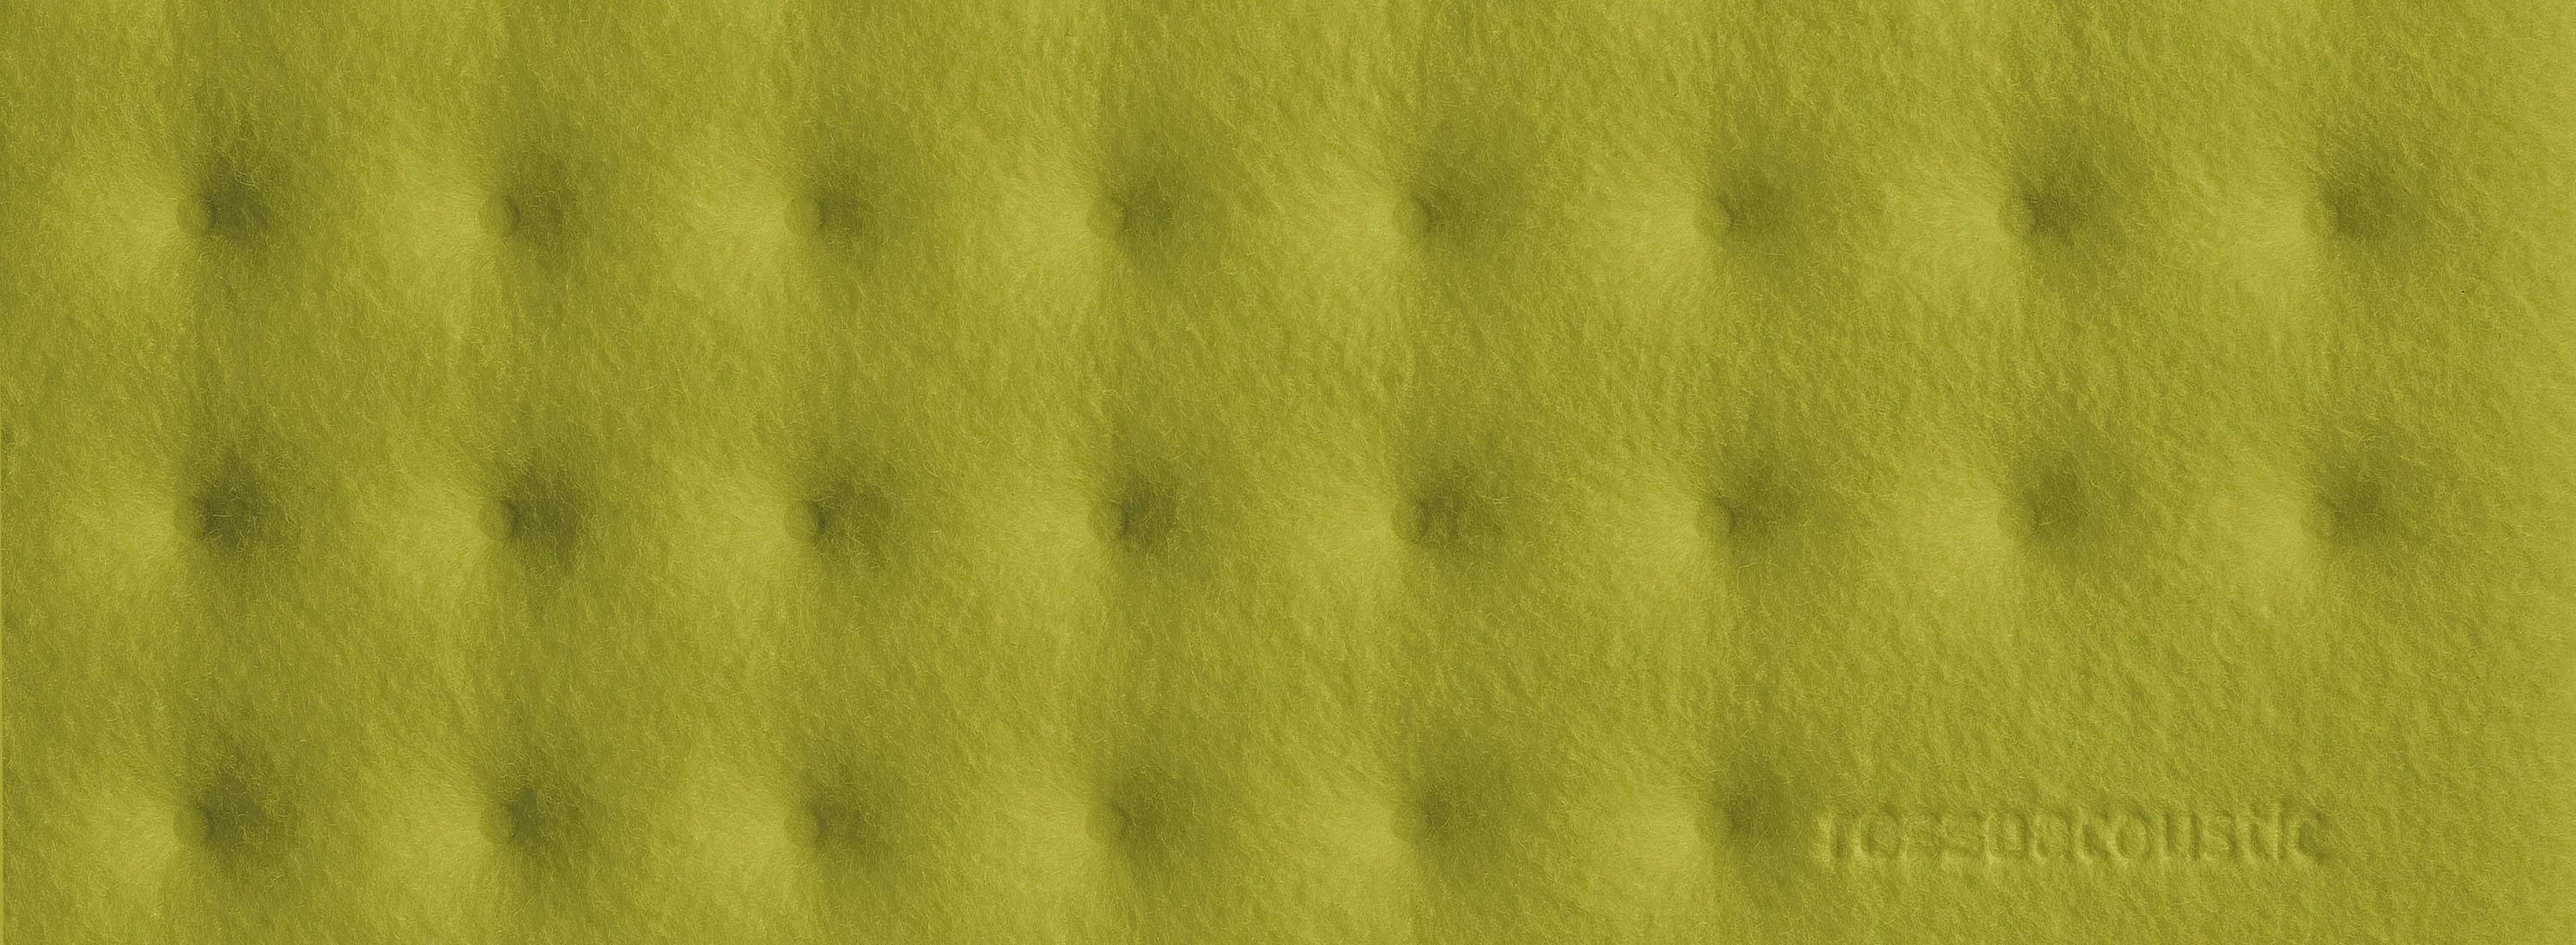 Rossoacoustic PAD R 600 Plus, Ø696 x 60 mm, soft moss